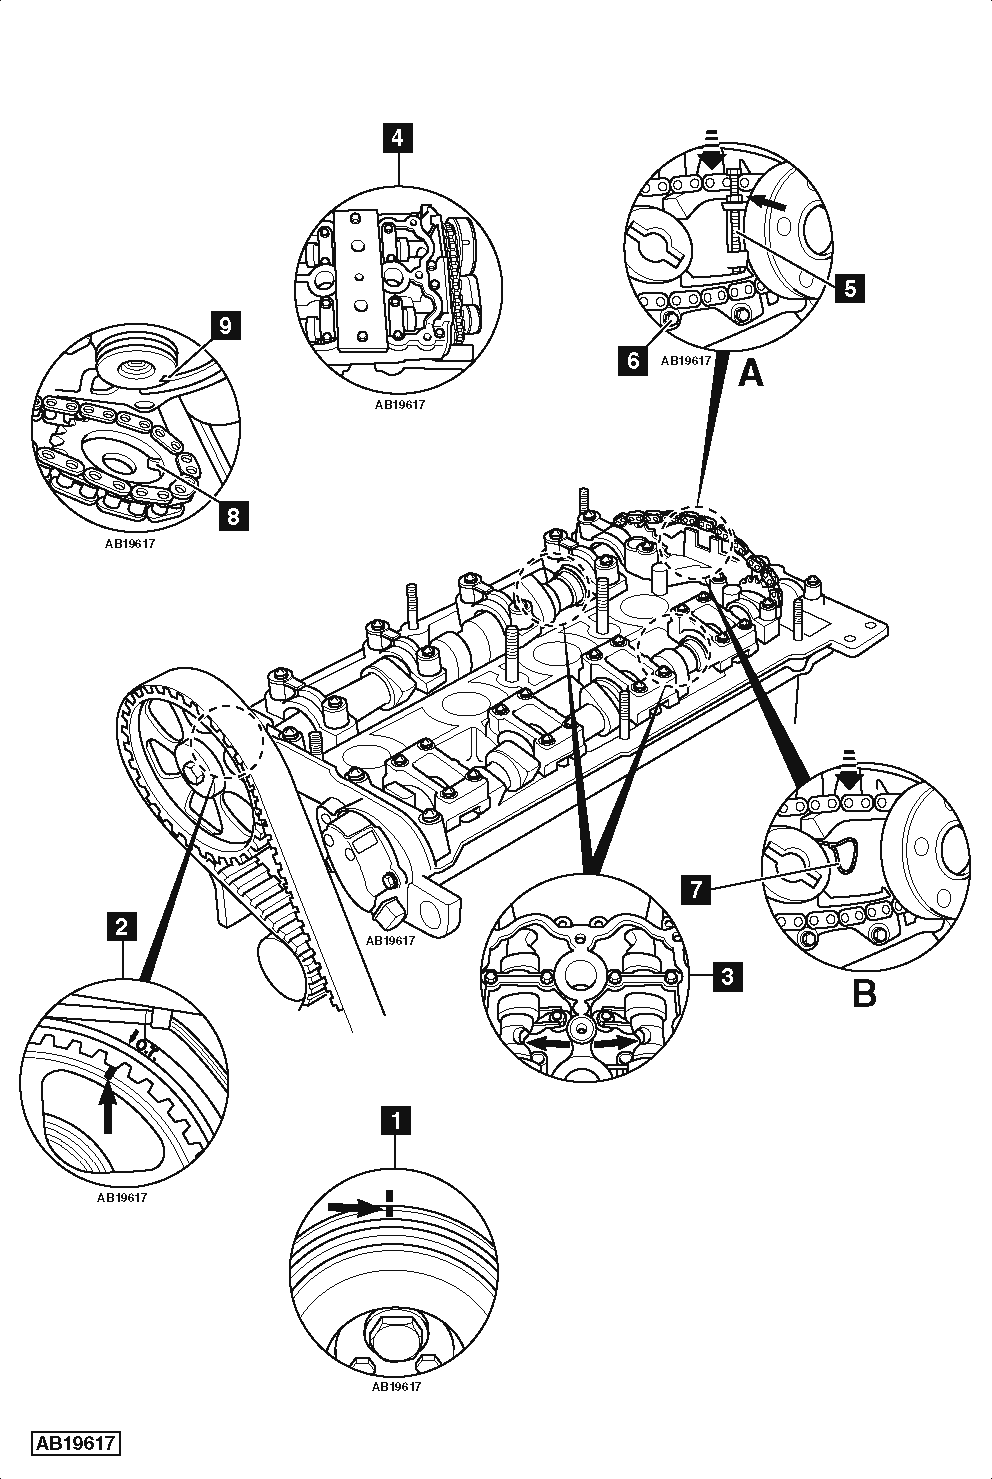 2001 dodge intrepid exhaust system diagram besides serpentine belt diagram 2004 chevrolet silverado series pickup v8